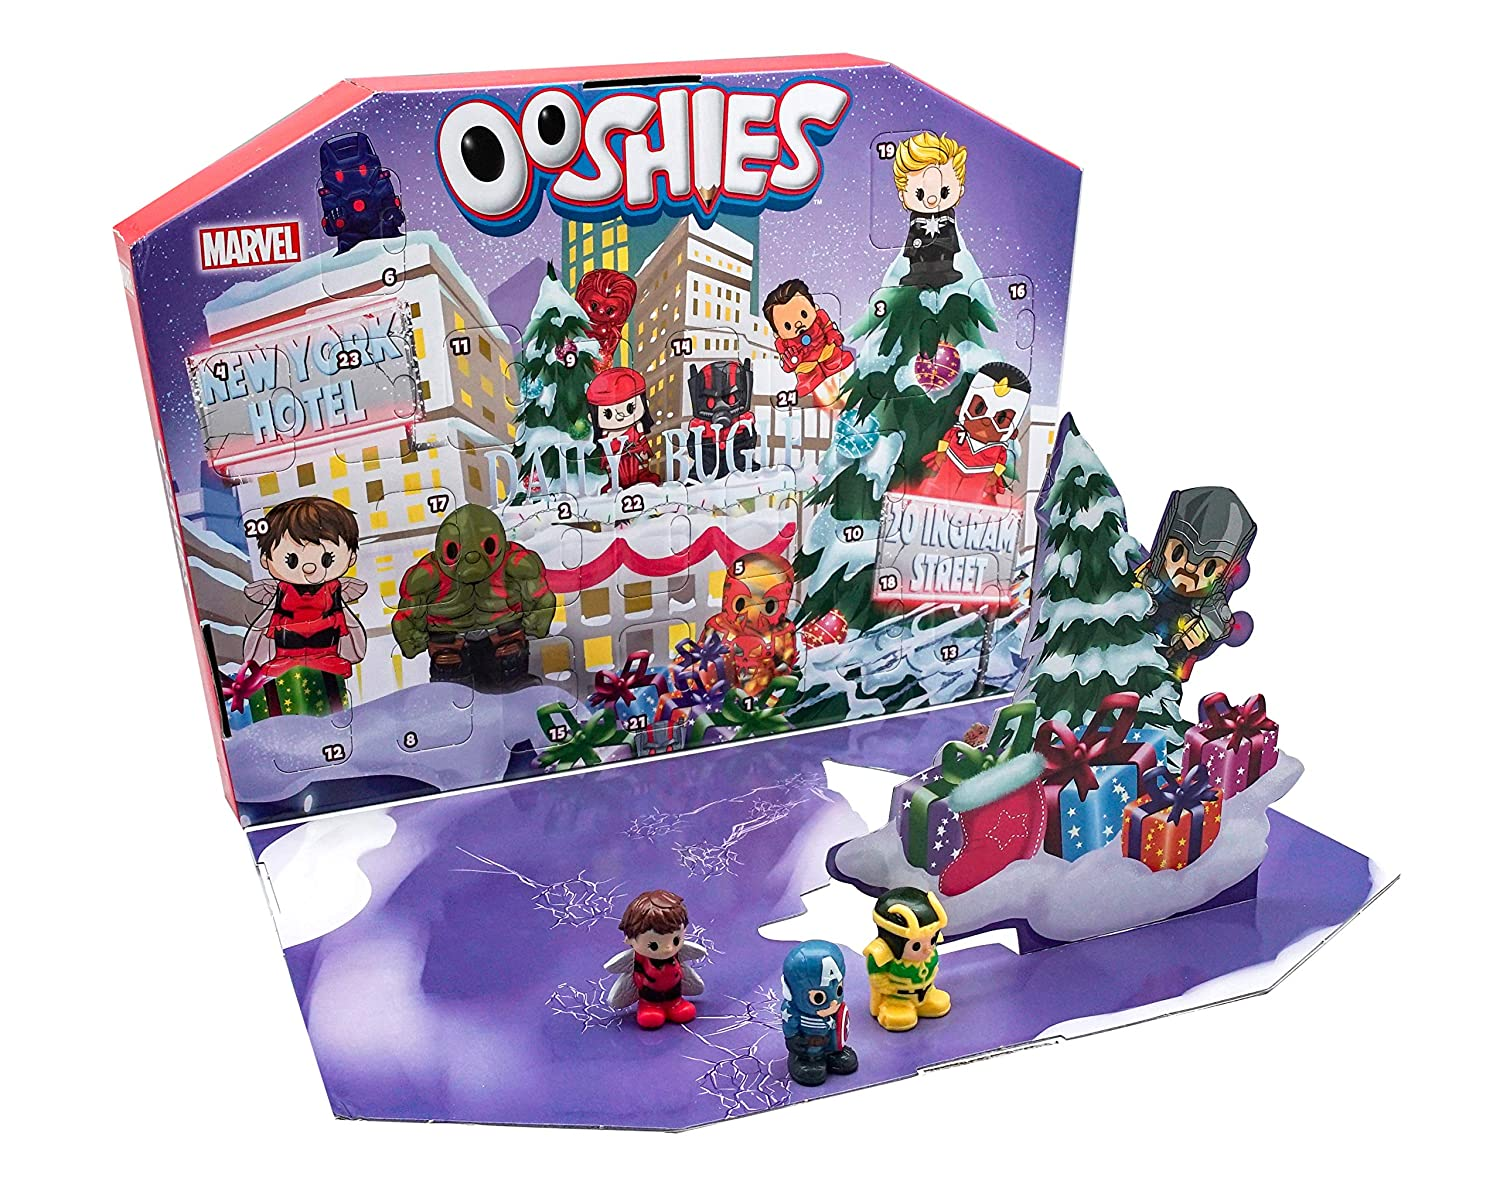 Ooshies 77170.0030 Marvel Advent Calendar, Multicolour Headstart